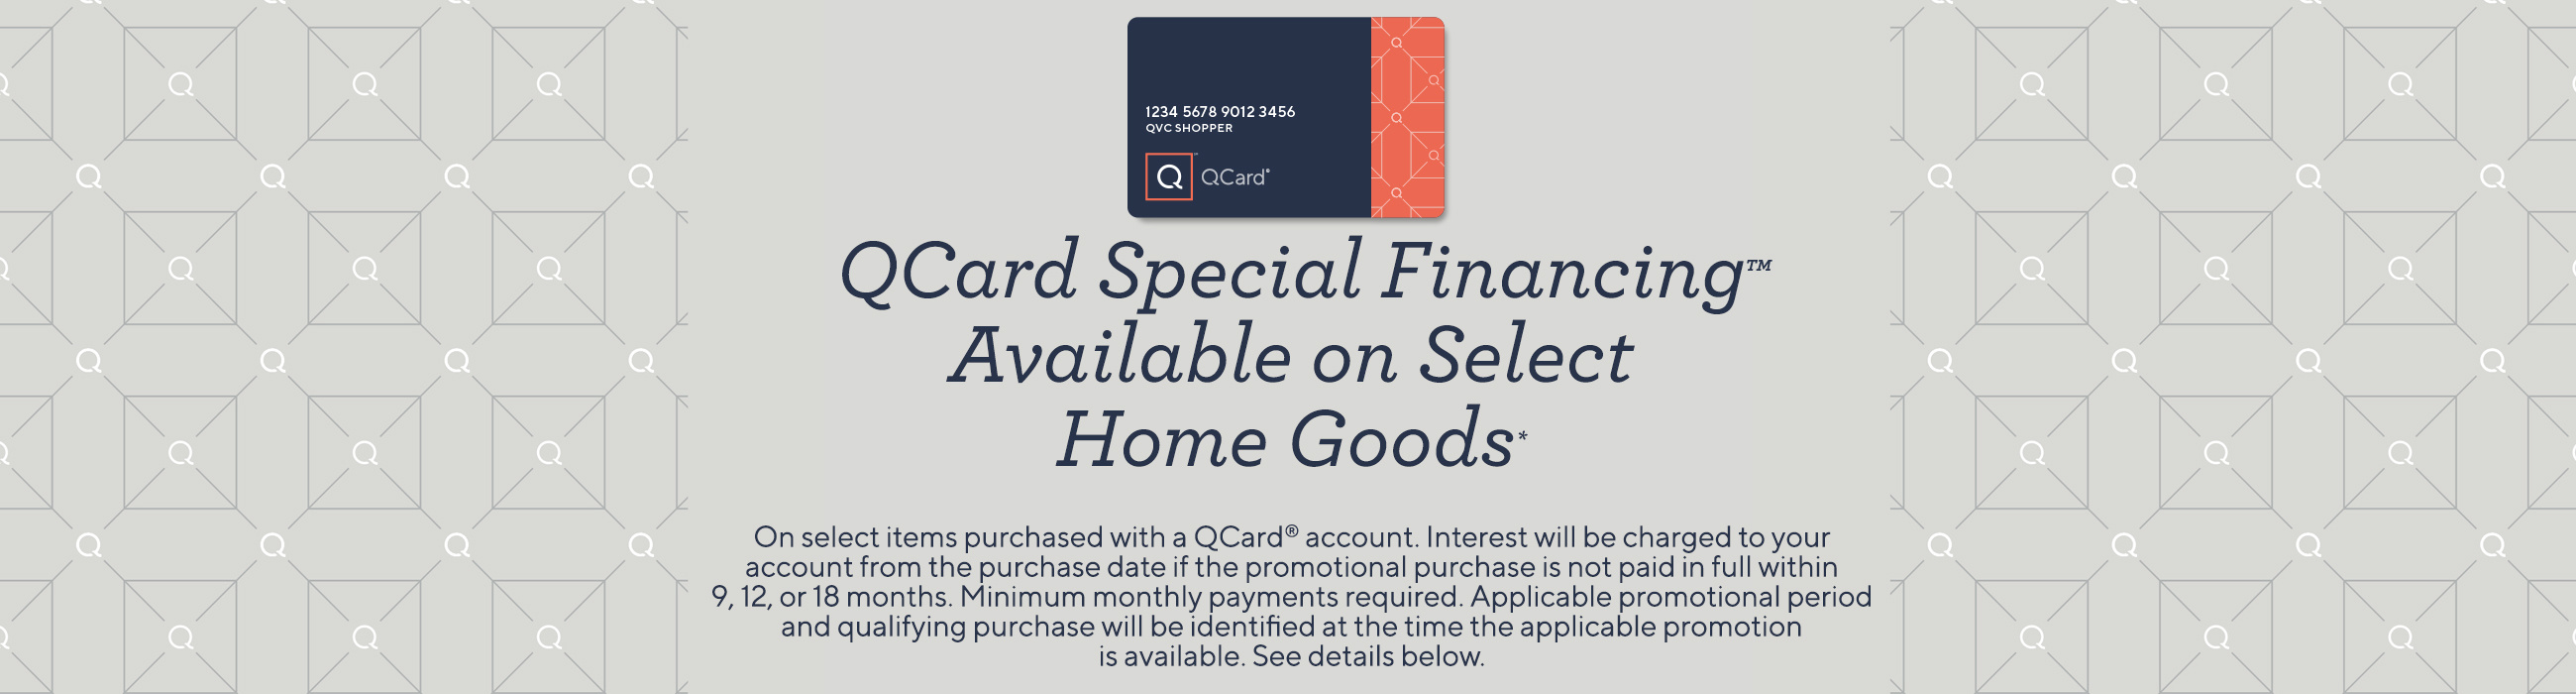 QCard Special Financing™ Available on Select Home Goods.   No interest if paid in full within 9, 12, or 18 months.*    On select items purchased with a QCard® account. Interest will be charged to your account from the purchase date if the promotional purchase is not paid in full within 9, 12, or 18 months. Minimum monthly payments required. Applicable promotional period and qualifying purchase will be identified at the time the applicable promotion is available.